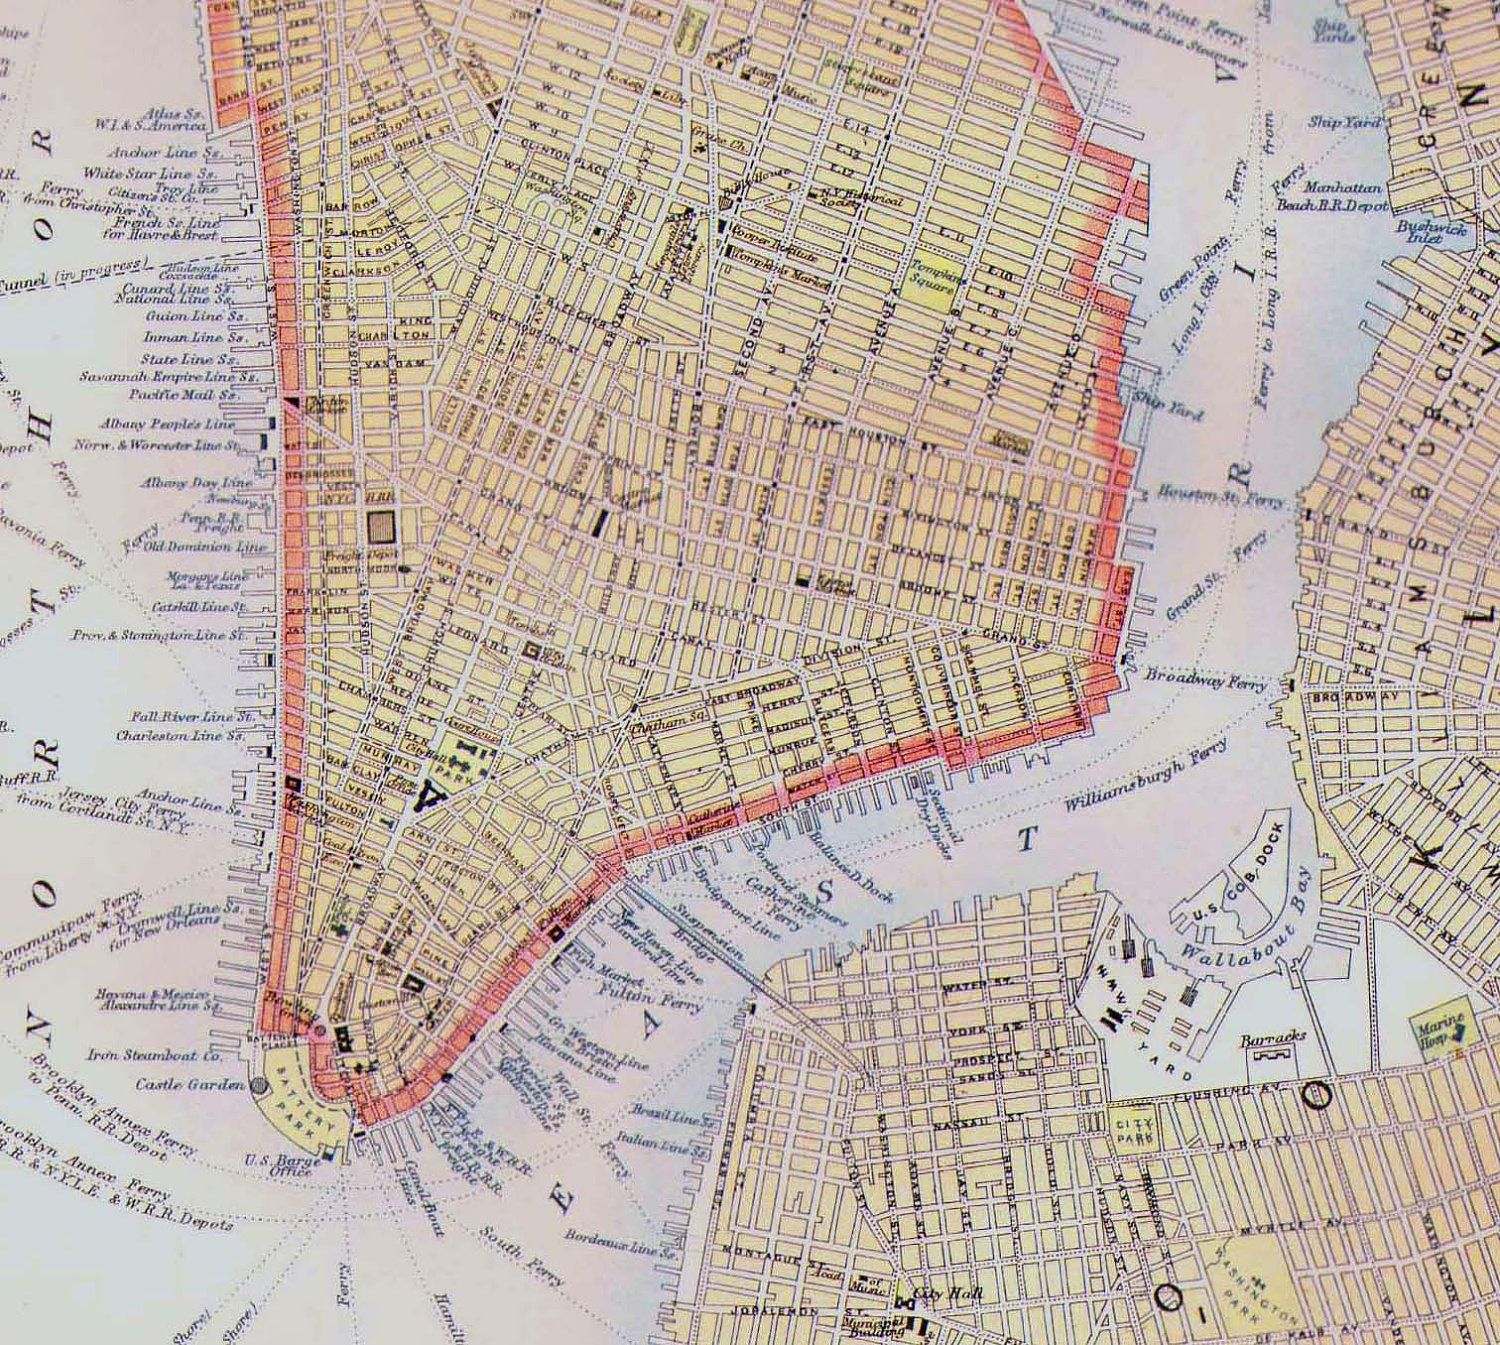 Map Of New York Like This Item Taylor Style Pinterest - New york city map 1950